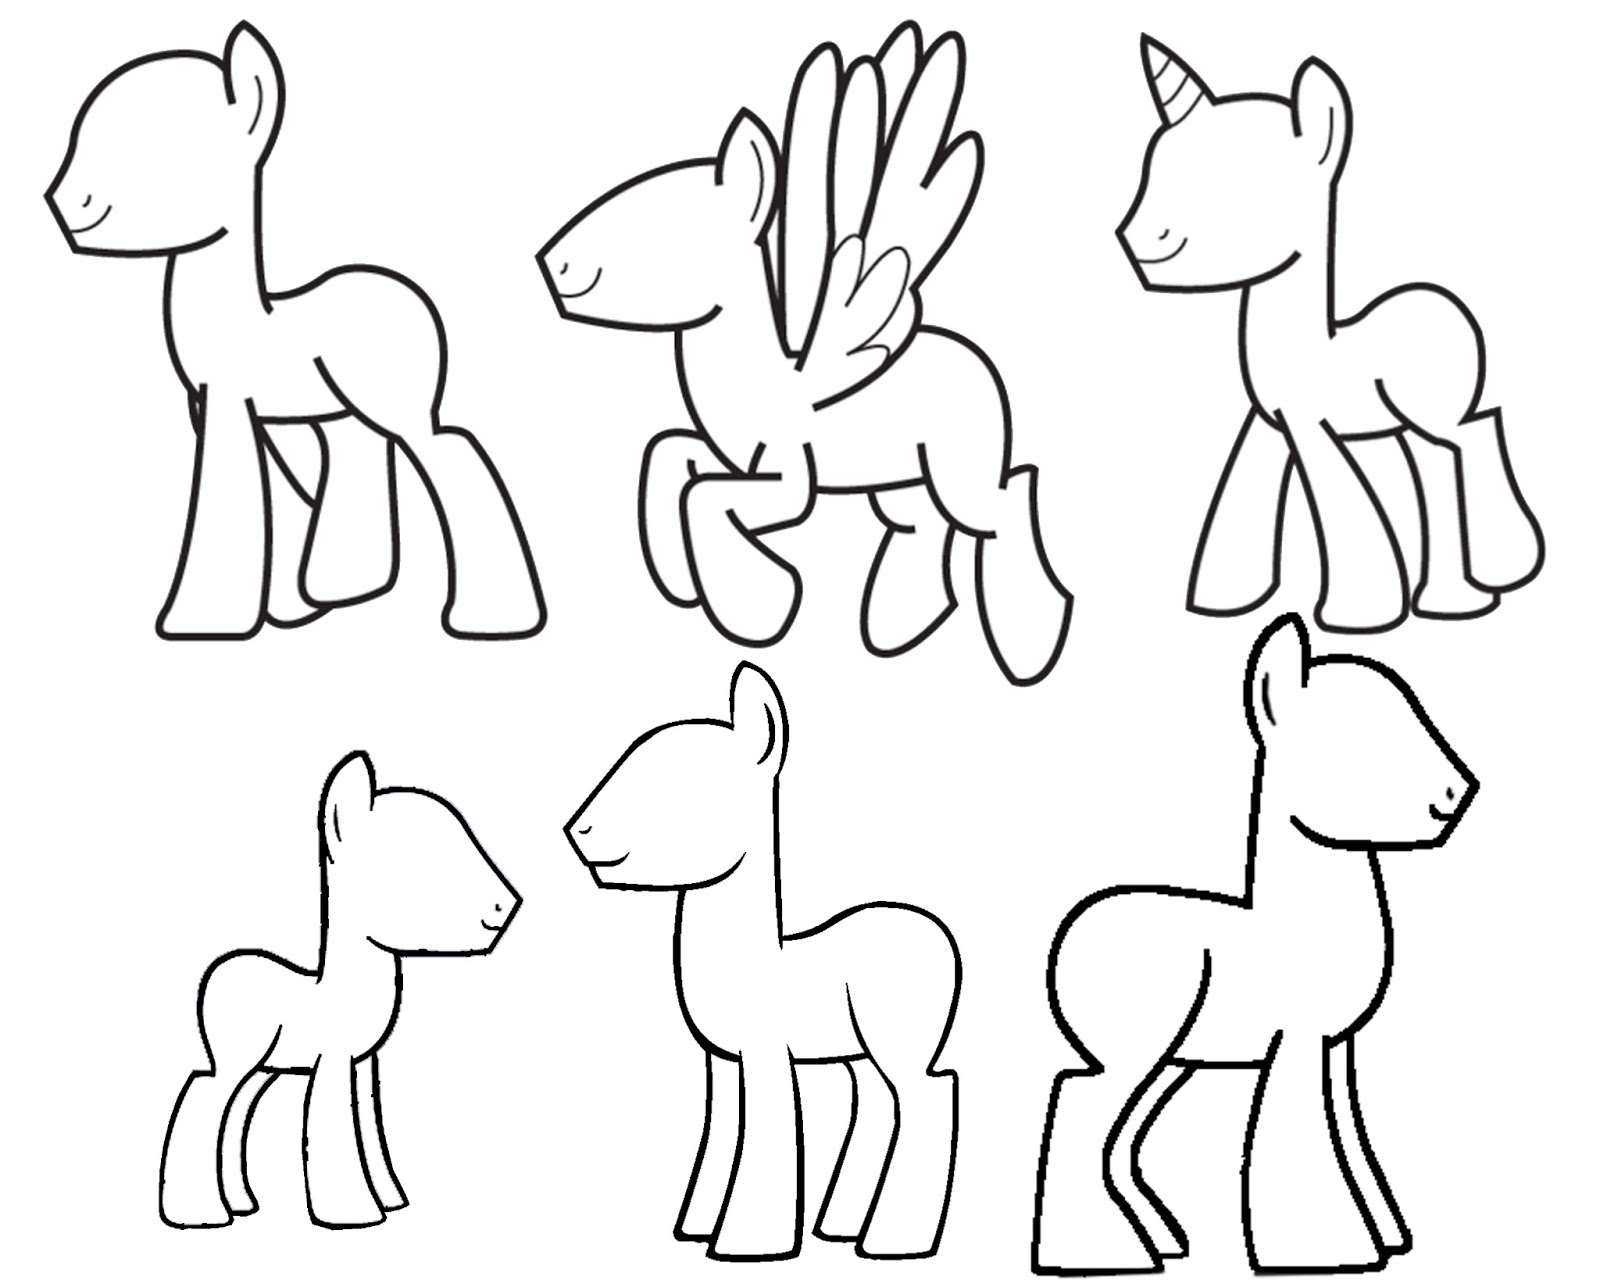 Doodlecraft: Design and DRAW your own My Little Pony!